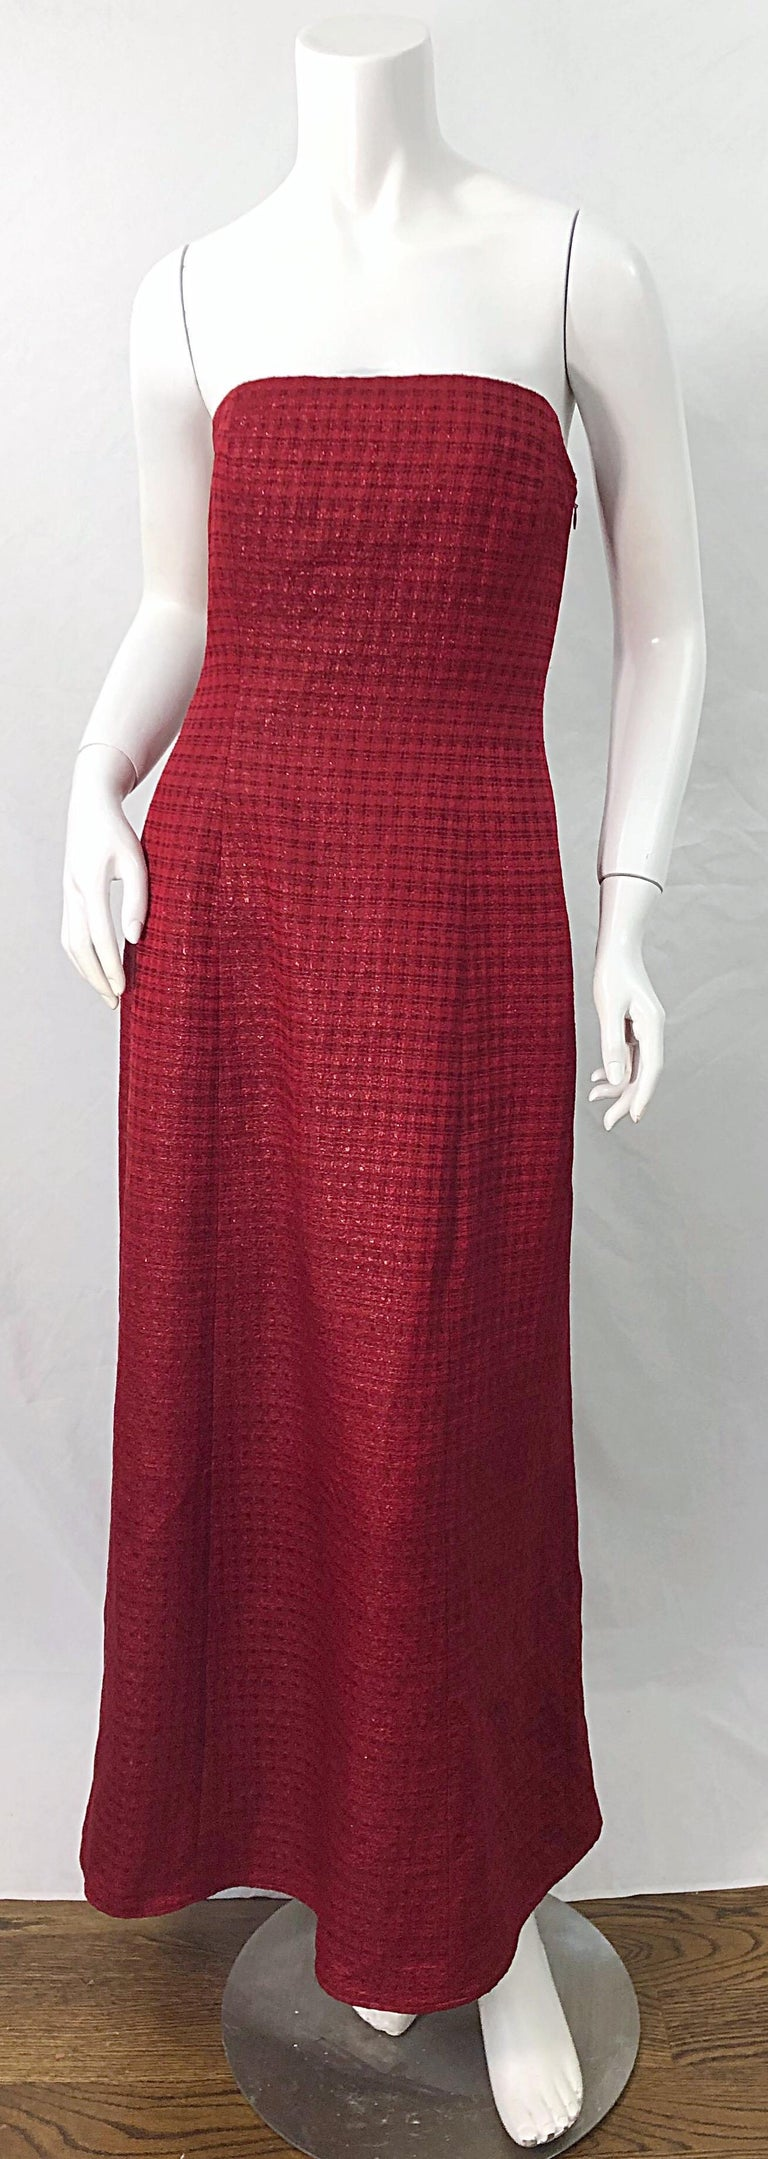 Stunning 1990s LOUIS FERAUD cranberry red silk and wool strapless evening gown ! Features a warm cranberry color with a slightly iridescent woven checkered print. Fully lined. Hidden zipper up the side with hook-and-eye closure. Interior boned